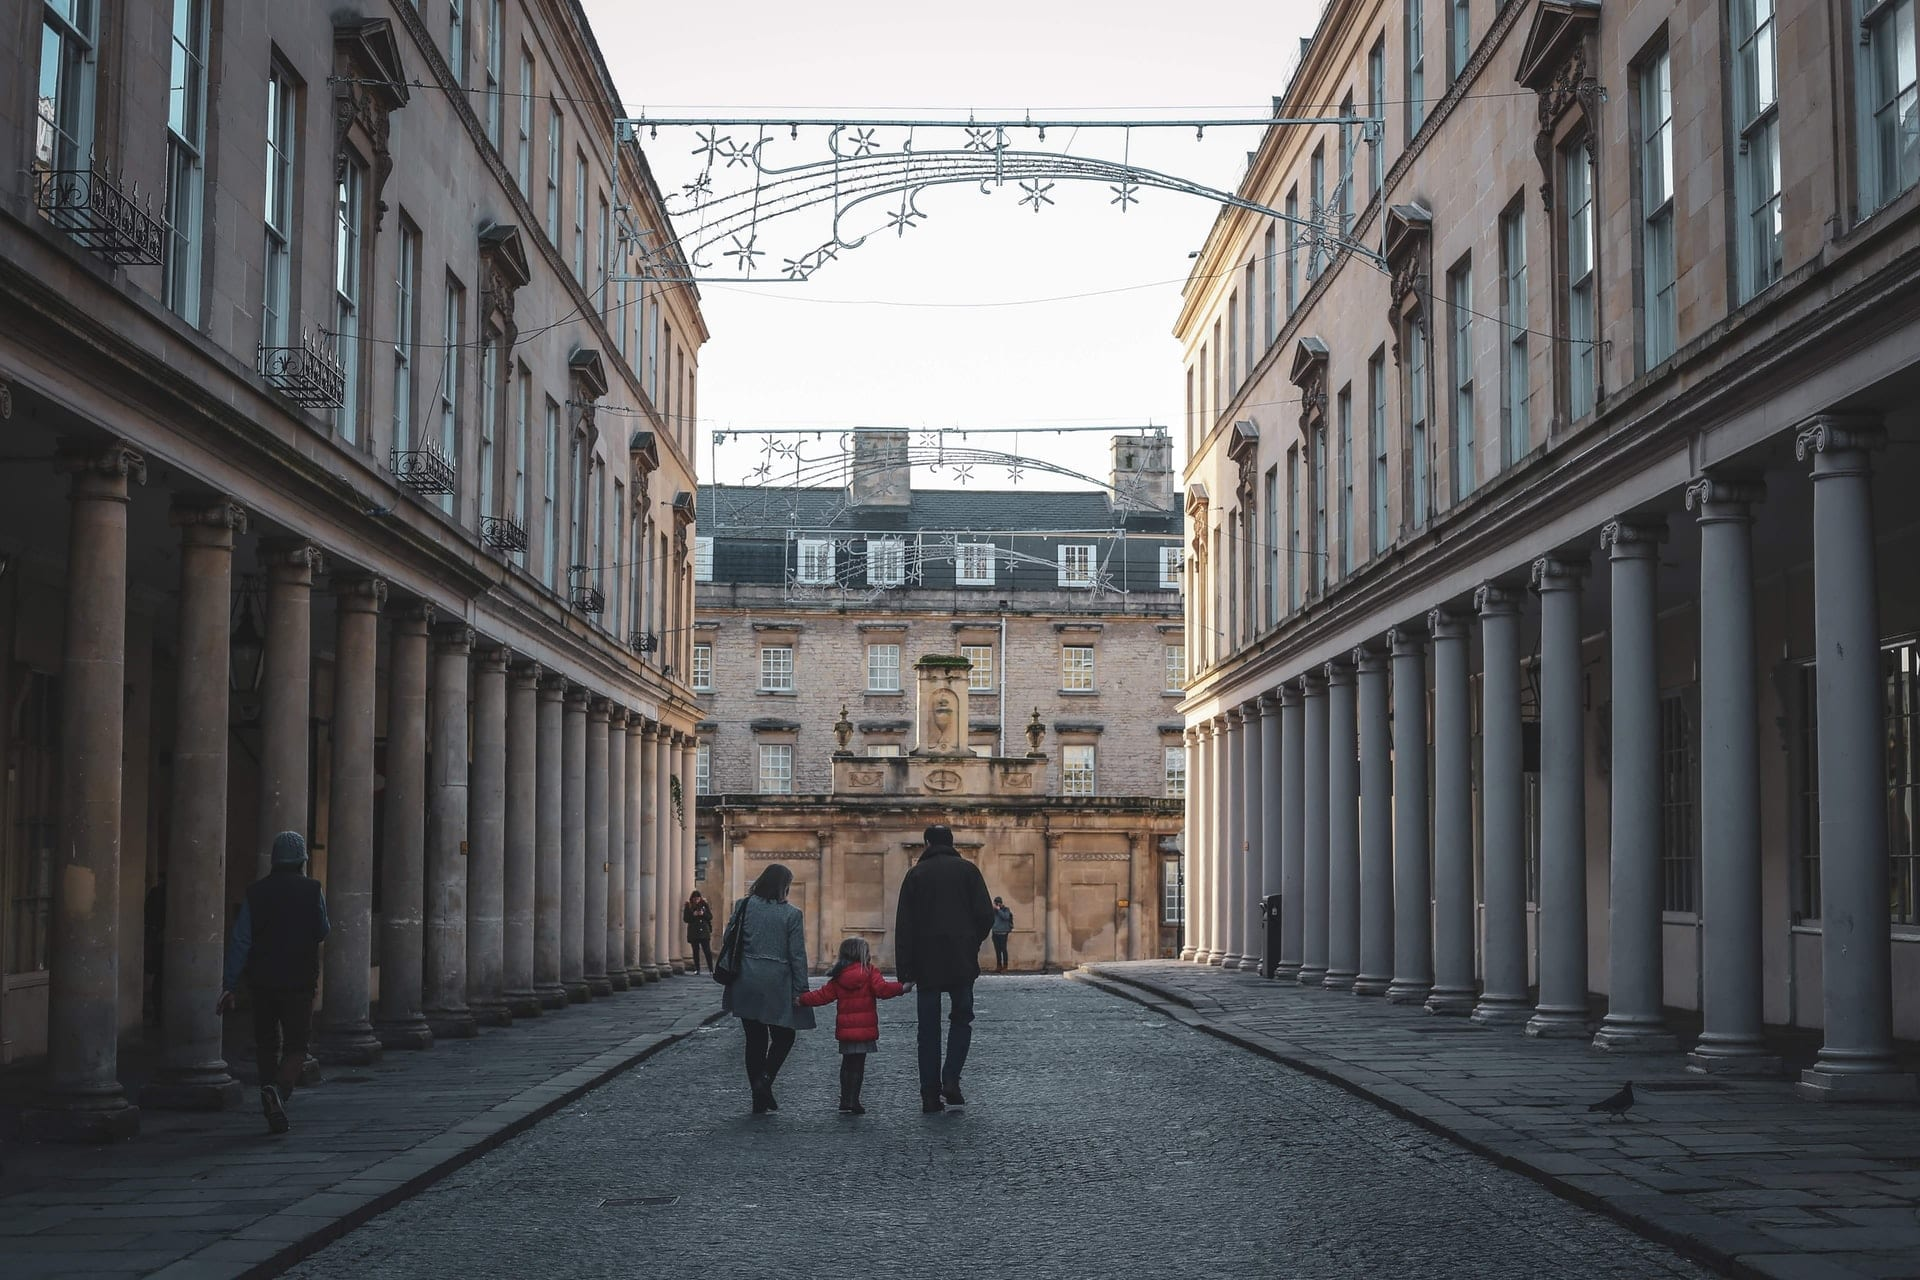 family-walking-down-a-street-in-bath-england-in-december-at-christmas